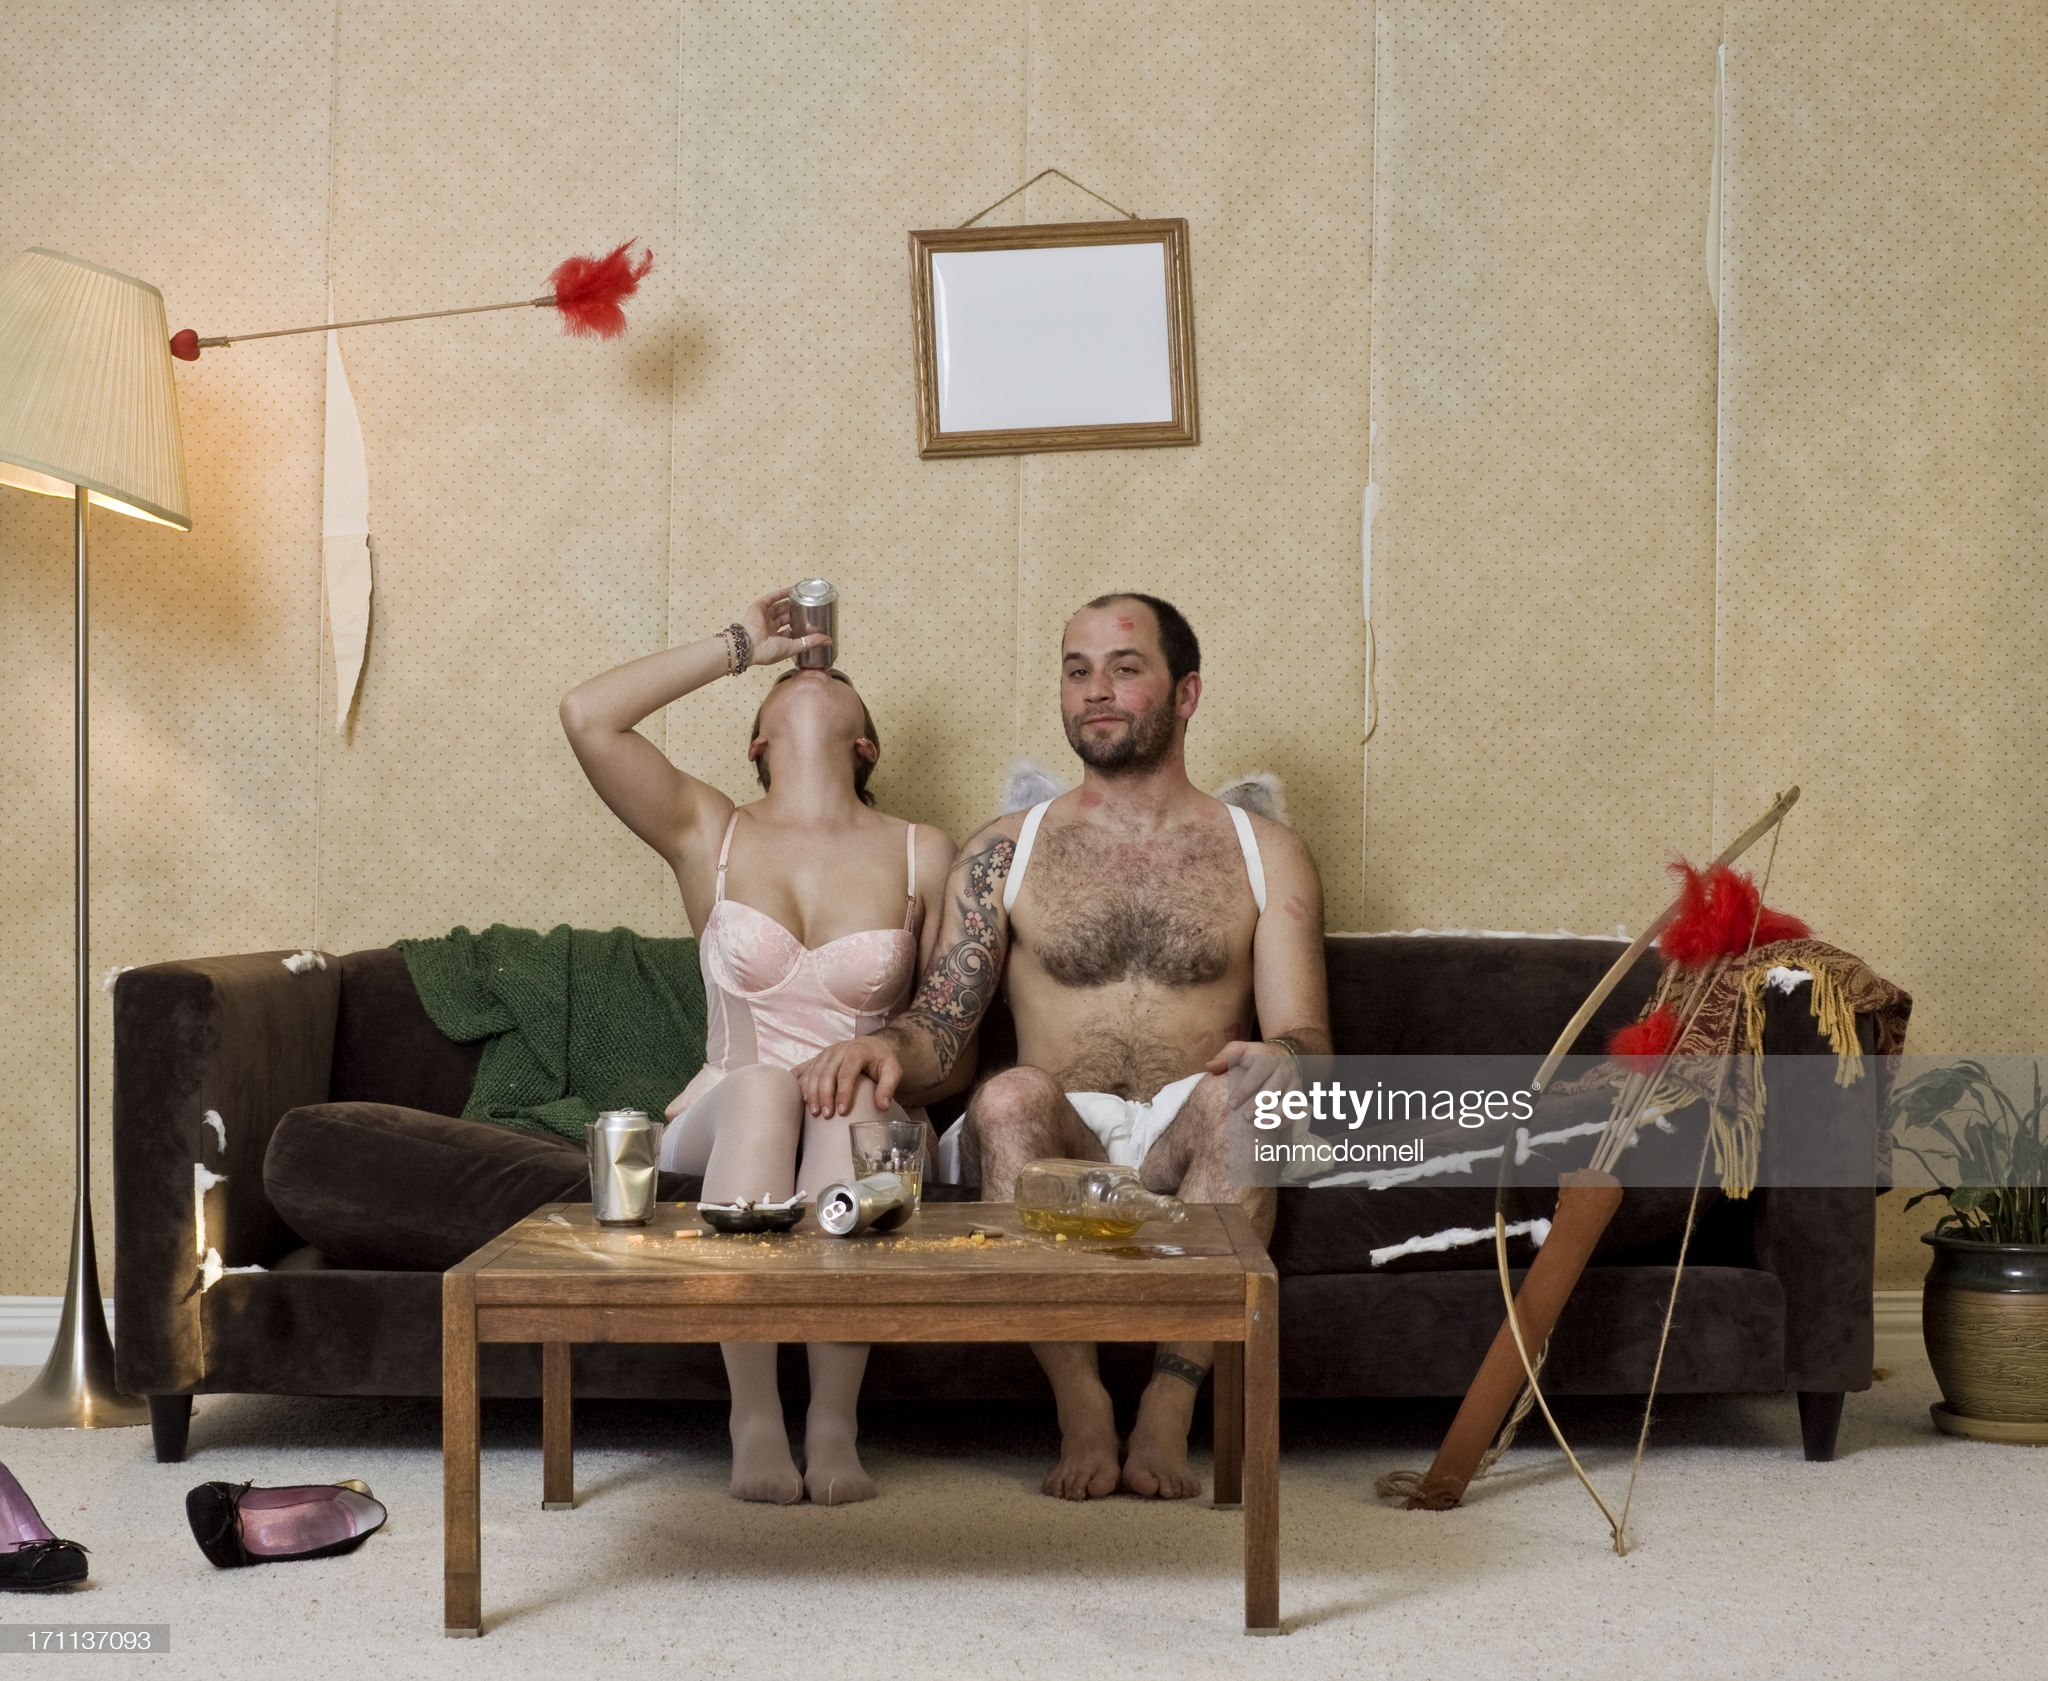 devious cupid and woman : Stock Photo